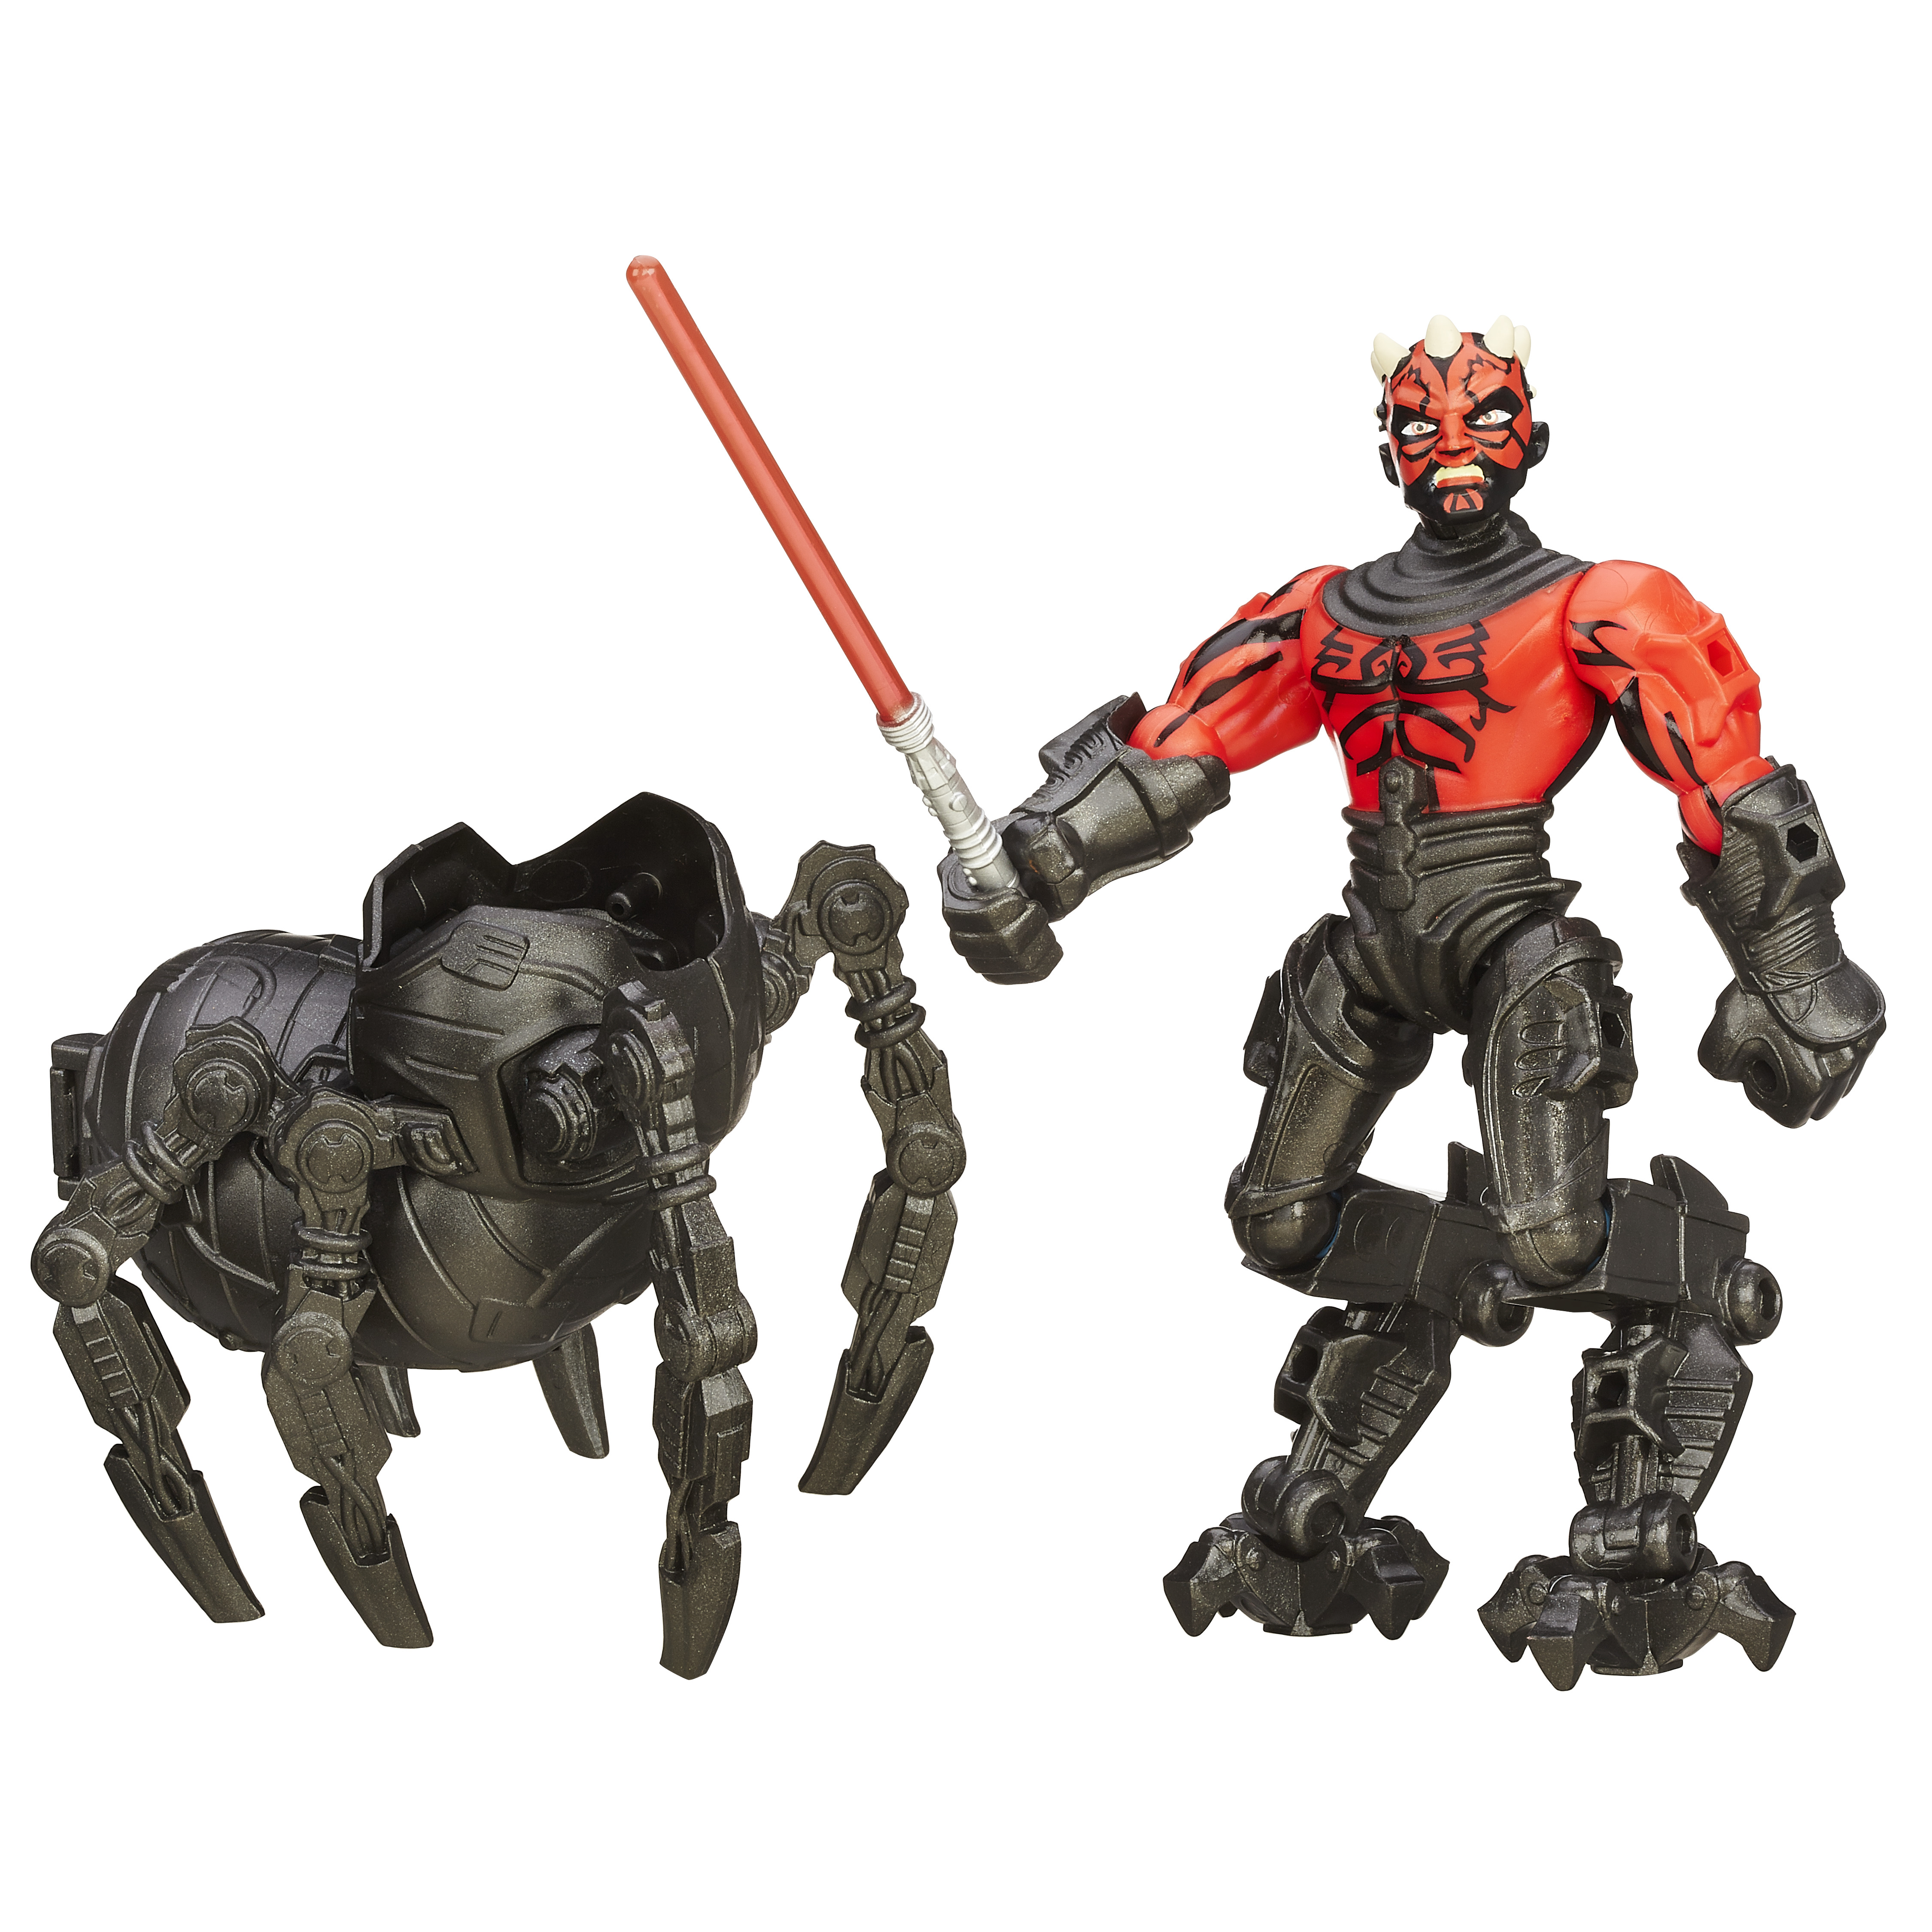 The best looking new Star Wars toys out there d the weirdest